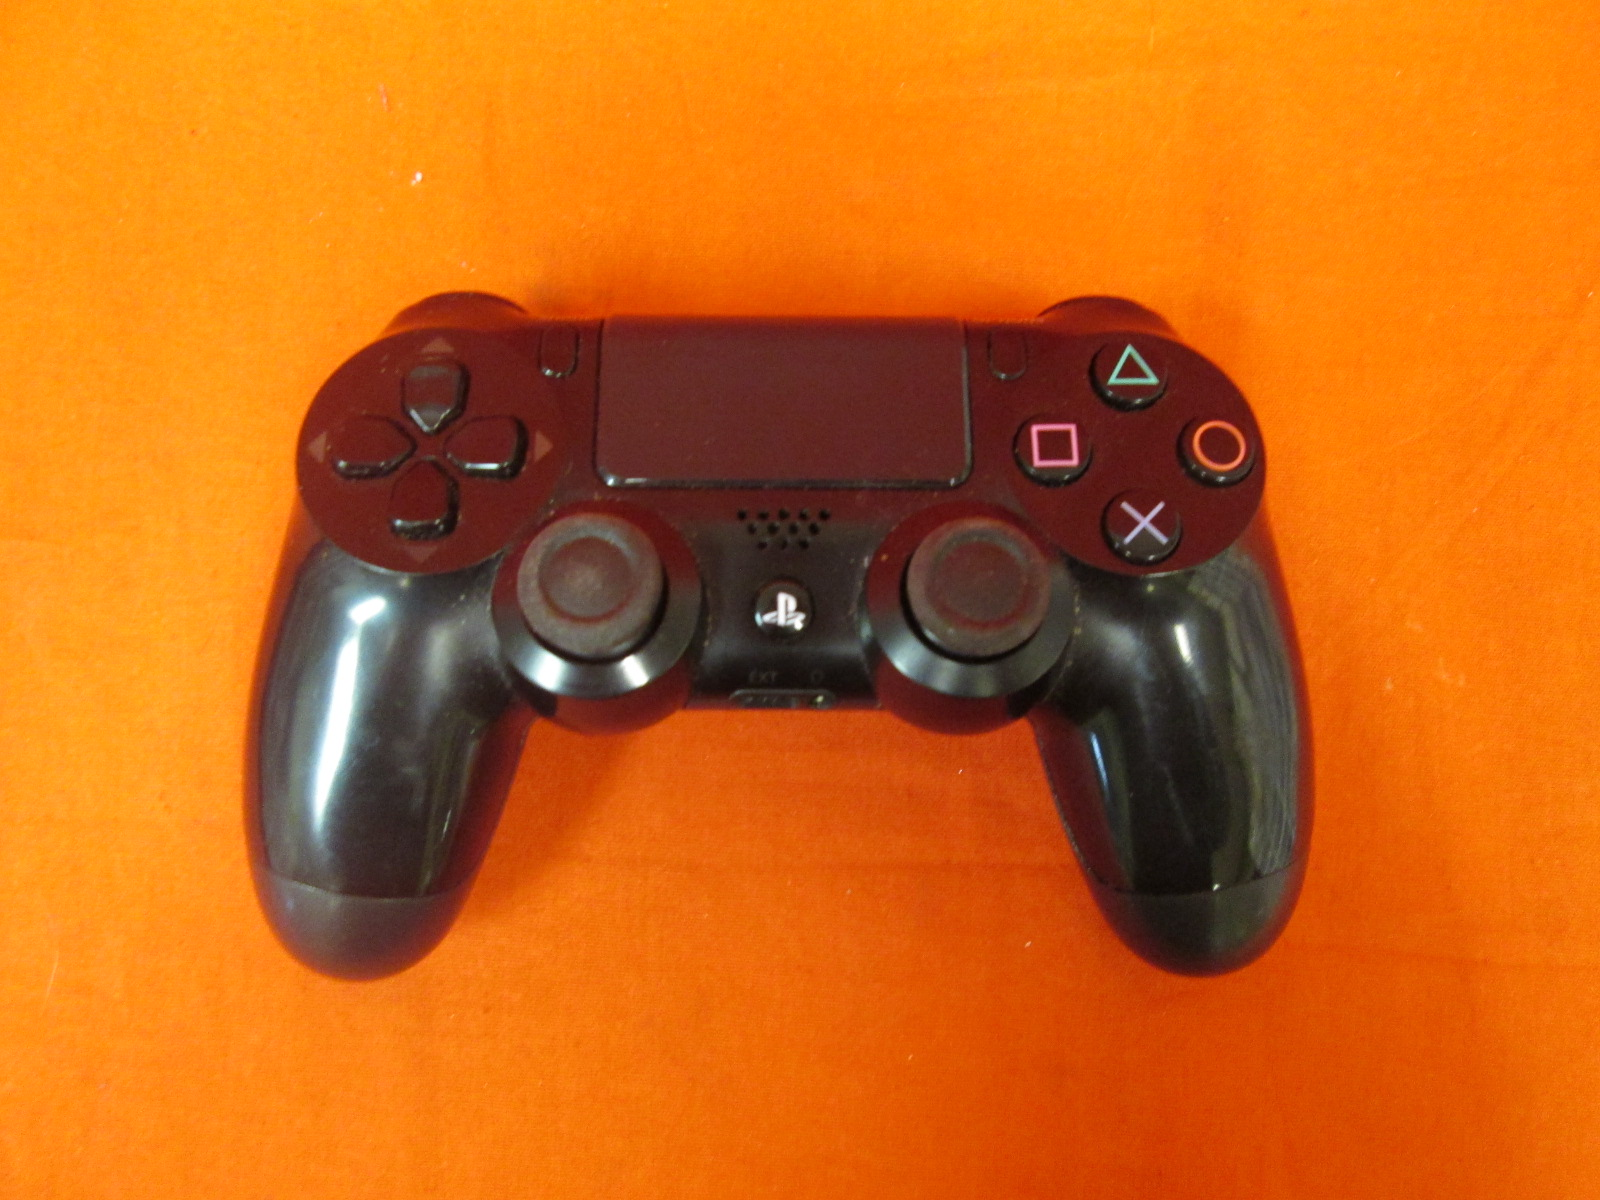 Modded Sony Dualshock 4 Wireless Controller For PlayStation 4 Jet